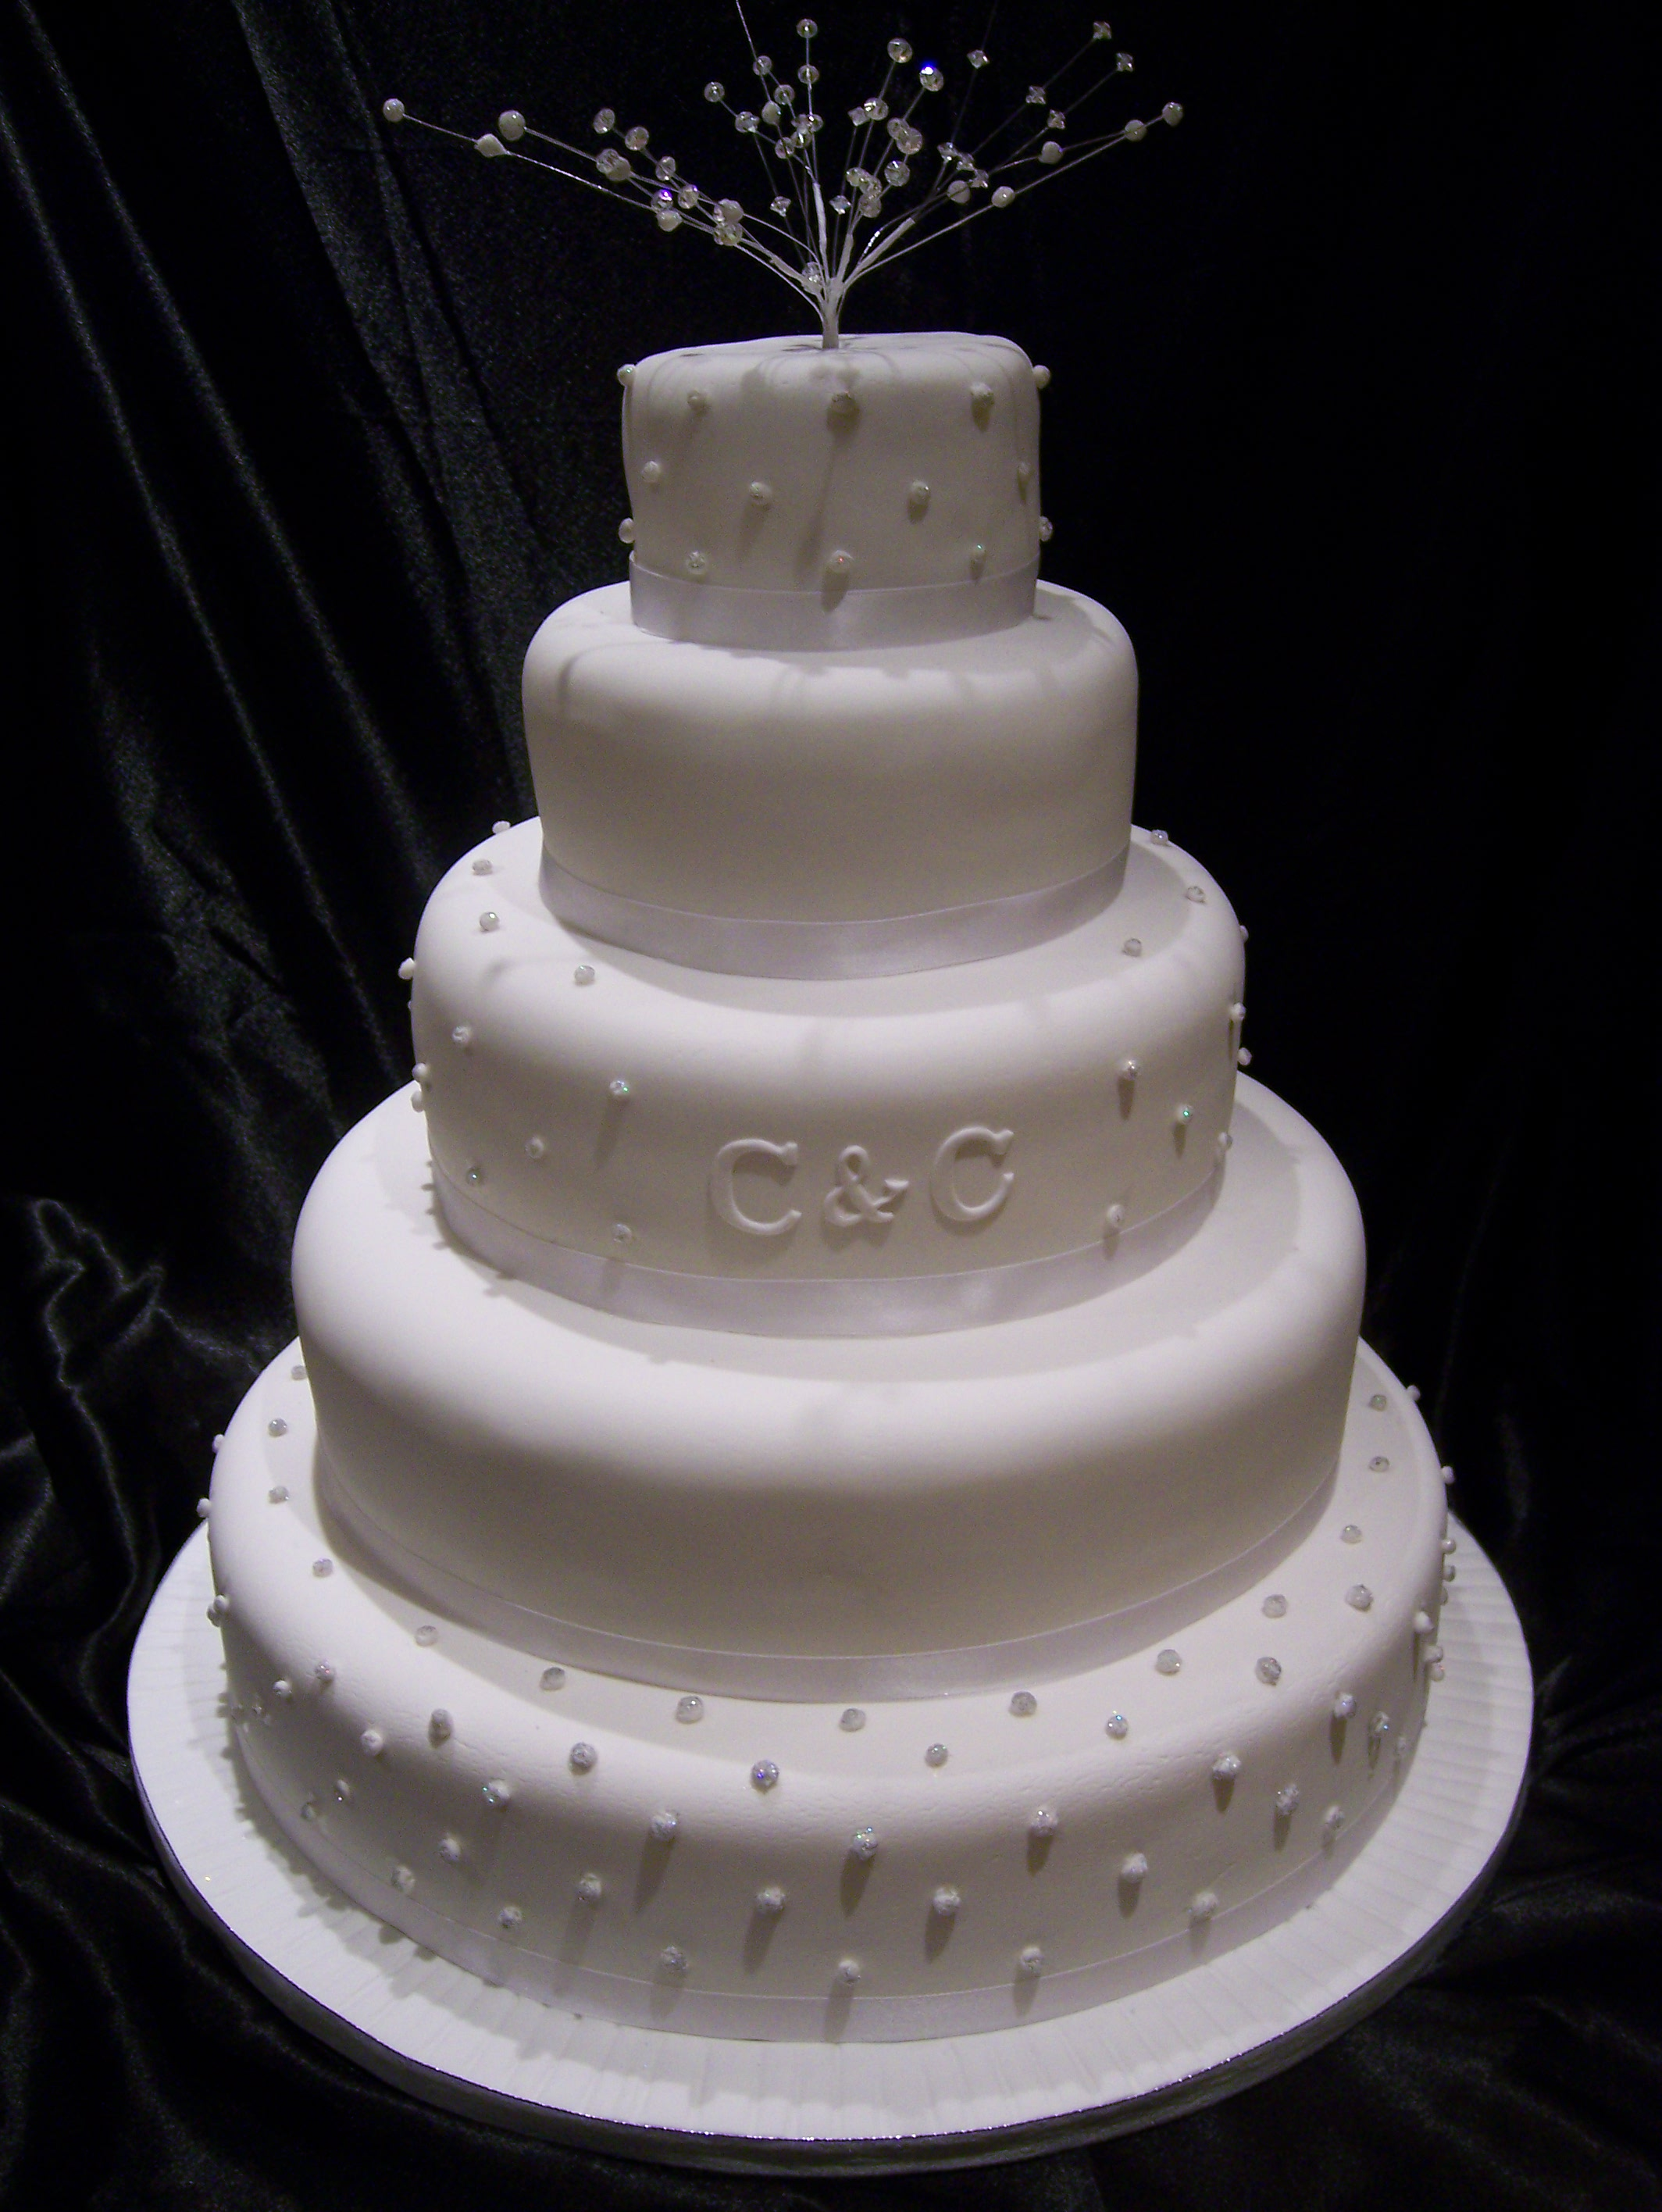 Edible Diamond Cakes submited images